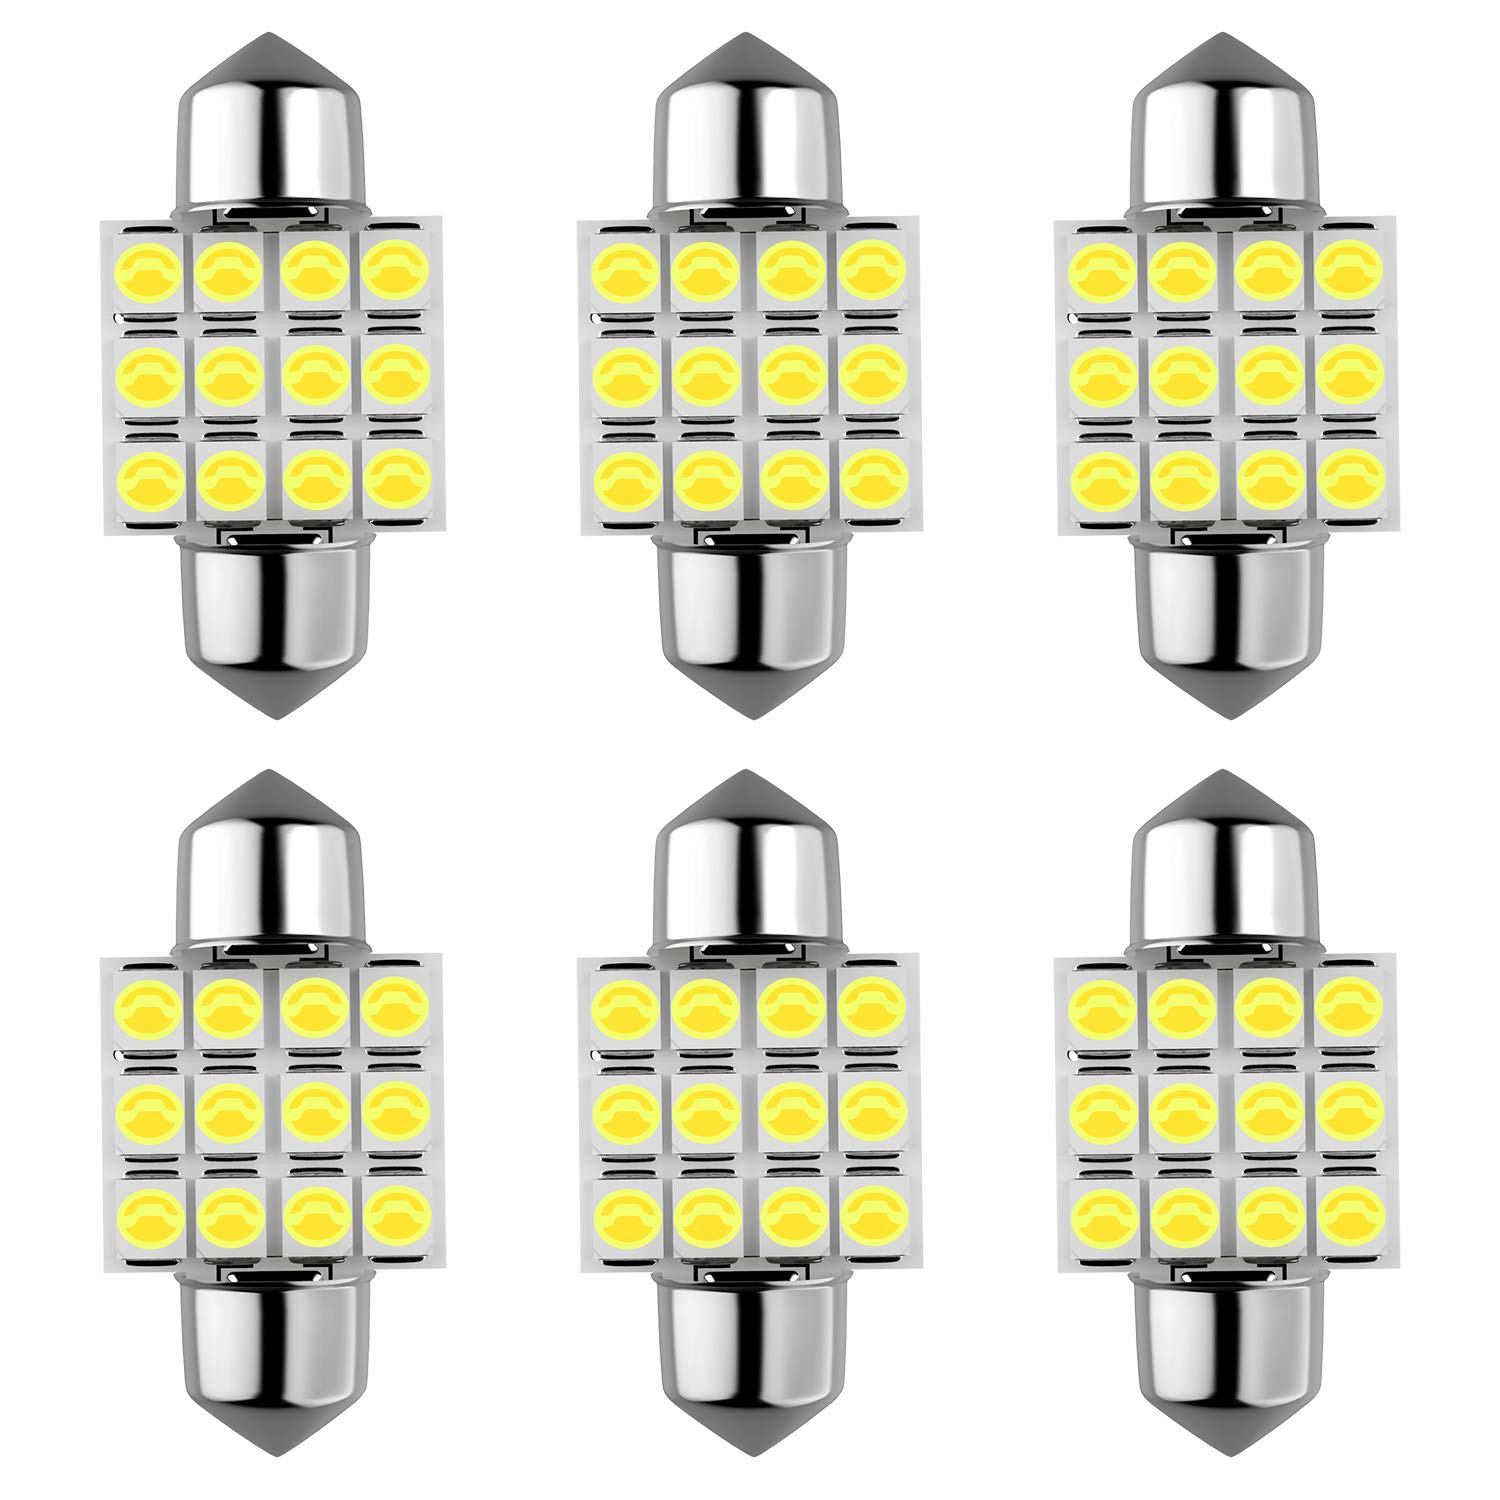 (2018 New Model) Super Bright 921 Led Bulb 4800 Lumens Error Free 921 912 T10 T15 for Backup Reverse Lights, Xenon White, No Hyper Flash(Pack of 4) HX Online